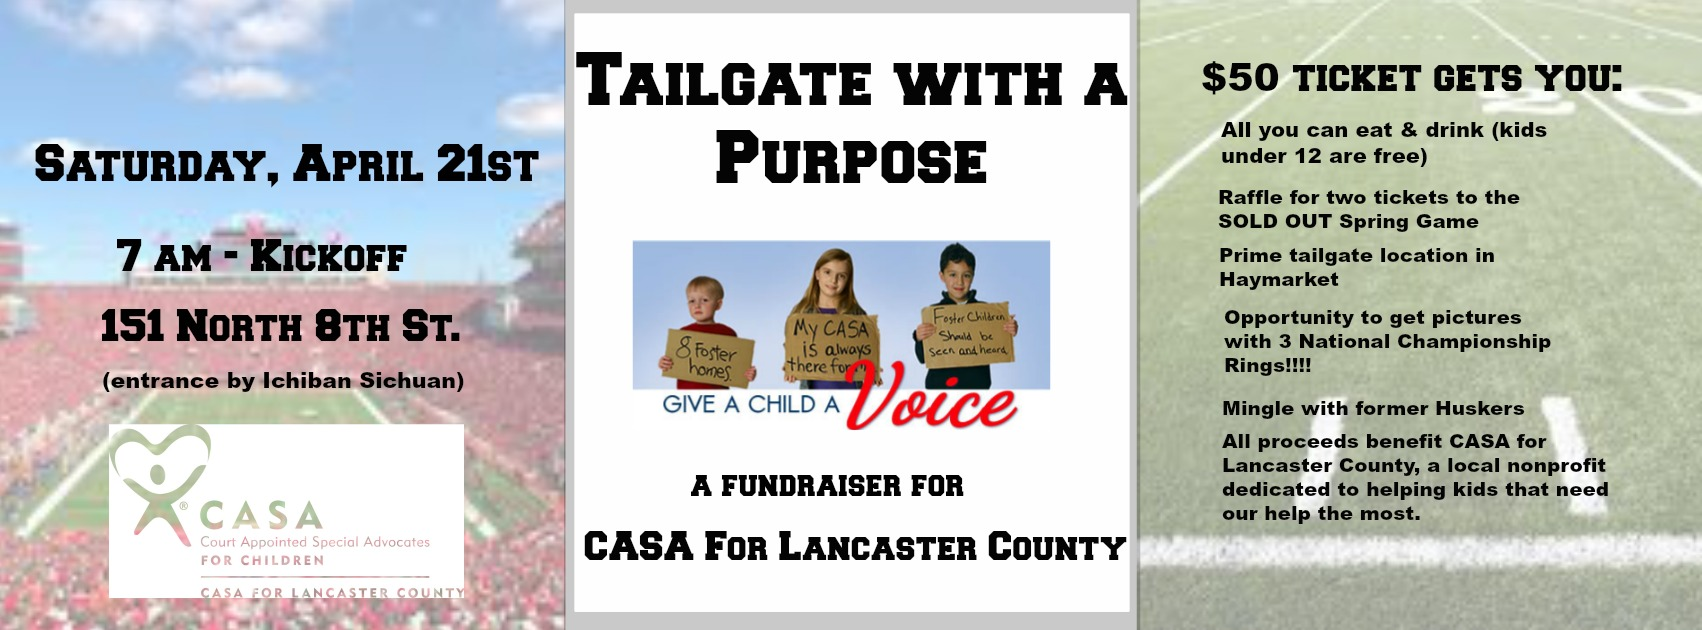 Tailgate with a Purpose!